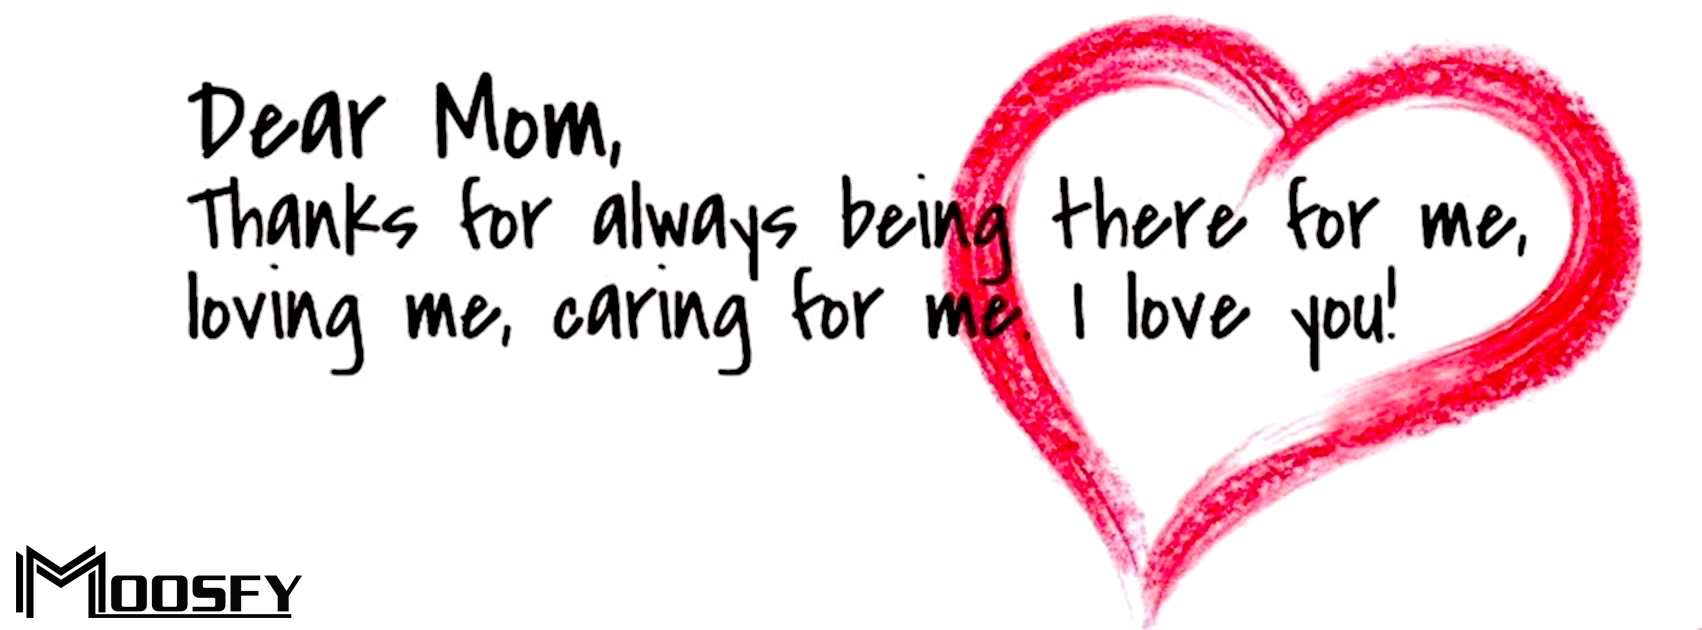 mothers-day-facebook-cover-2014.png